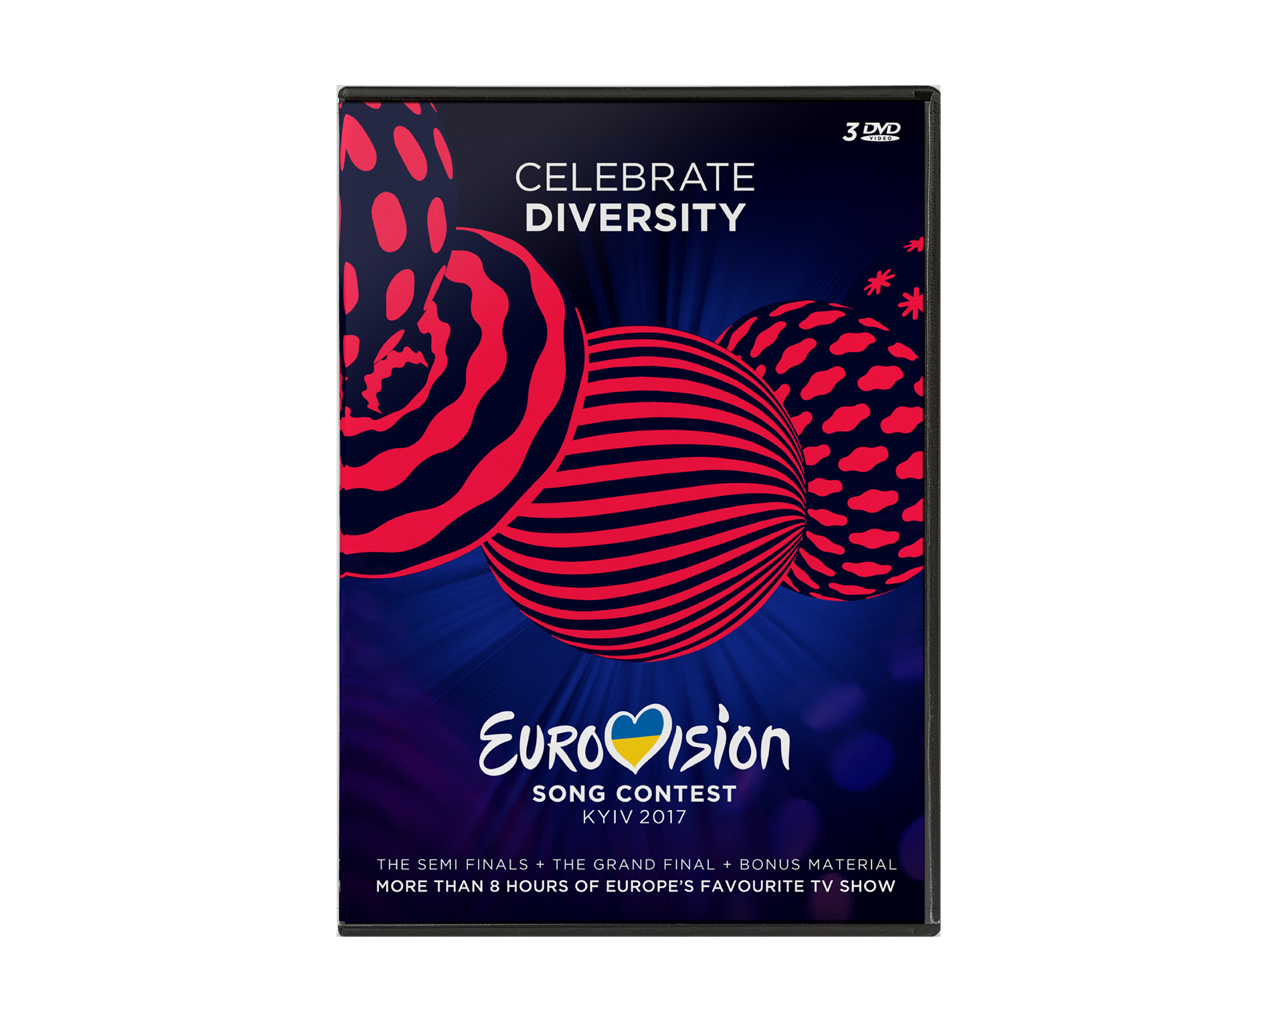 OFFICIAL EUROVISION SONG CONTEST DVD 2017